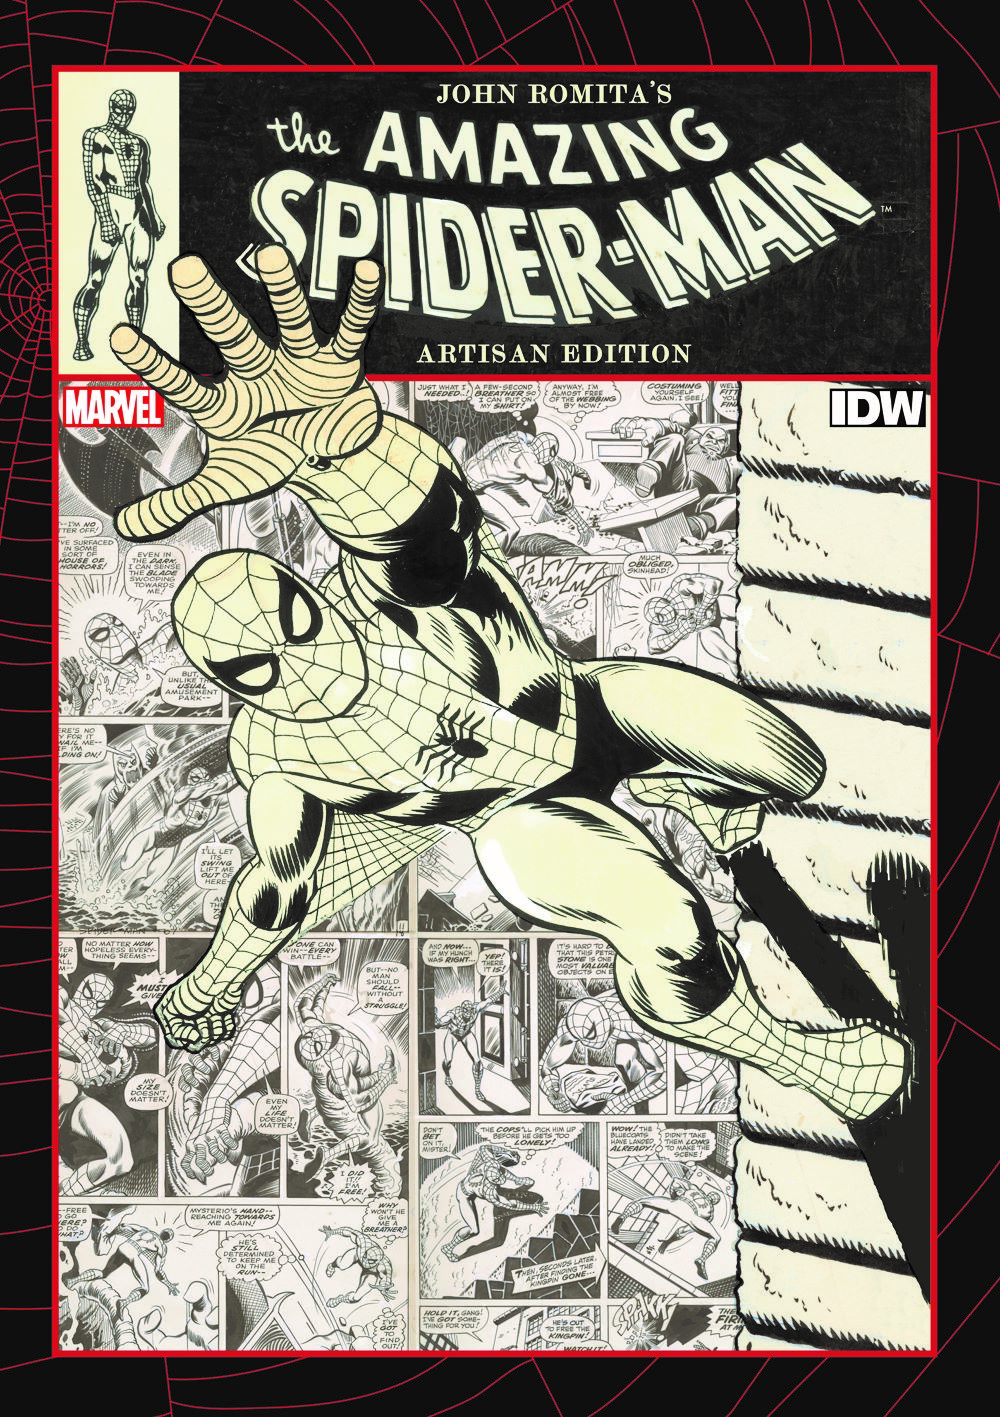 Jo-2 ComicList Previews: JOHN ROMITA'S THE AMAZING SPIDER-MAN ARTISAN EDITION TP